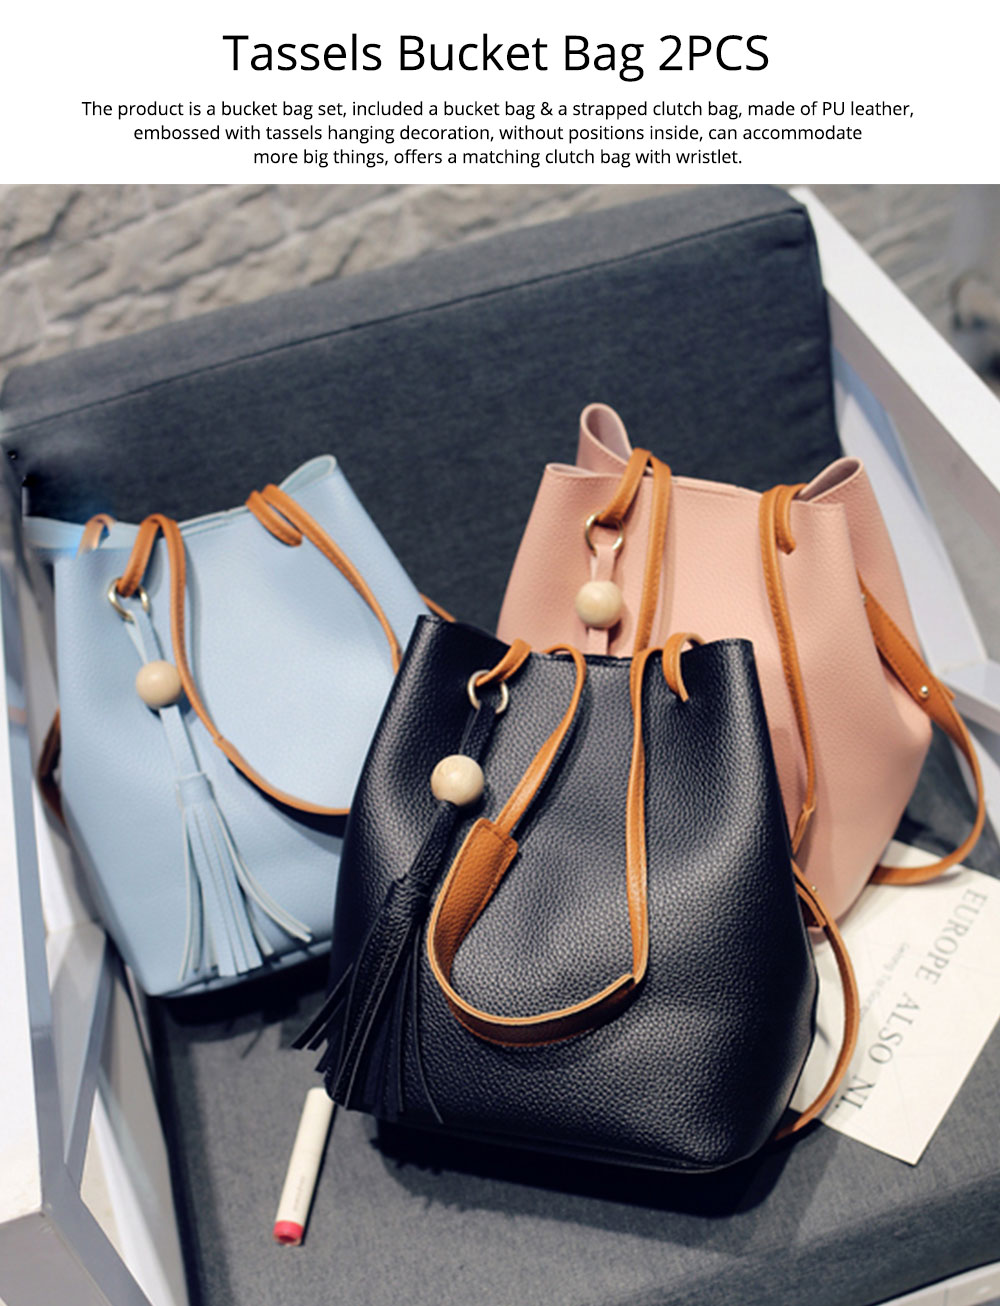 Women Bucket Bag Soft PU Leather, Large Capacity Tassels Ornaments Shoulder Bag, Solid Cross-body Bag Lady Simple Accessories 2PCS 0